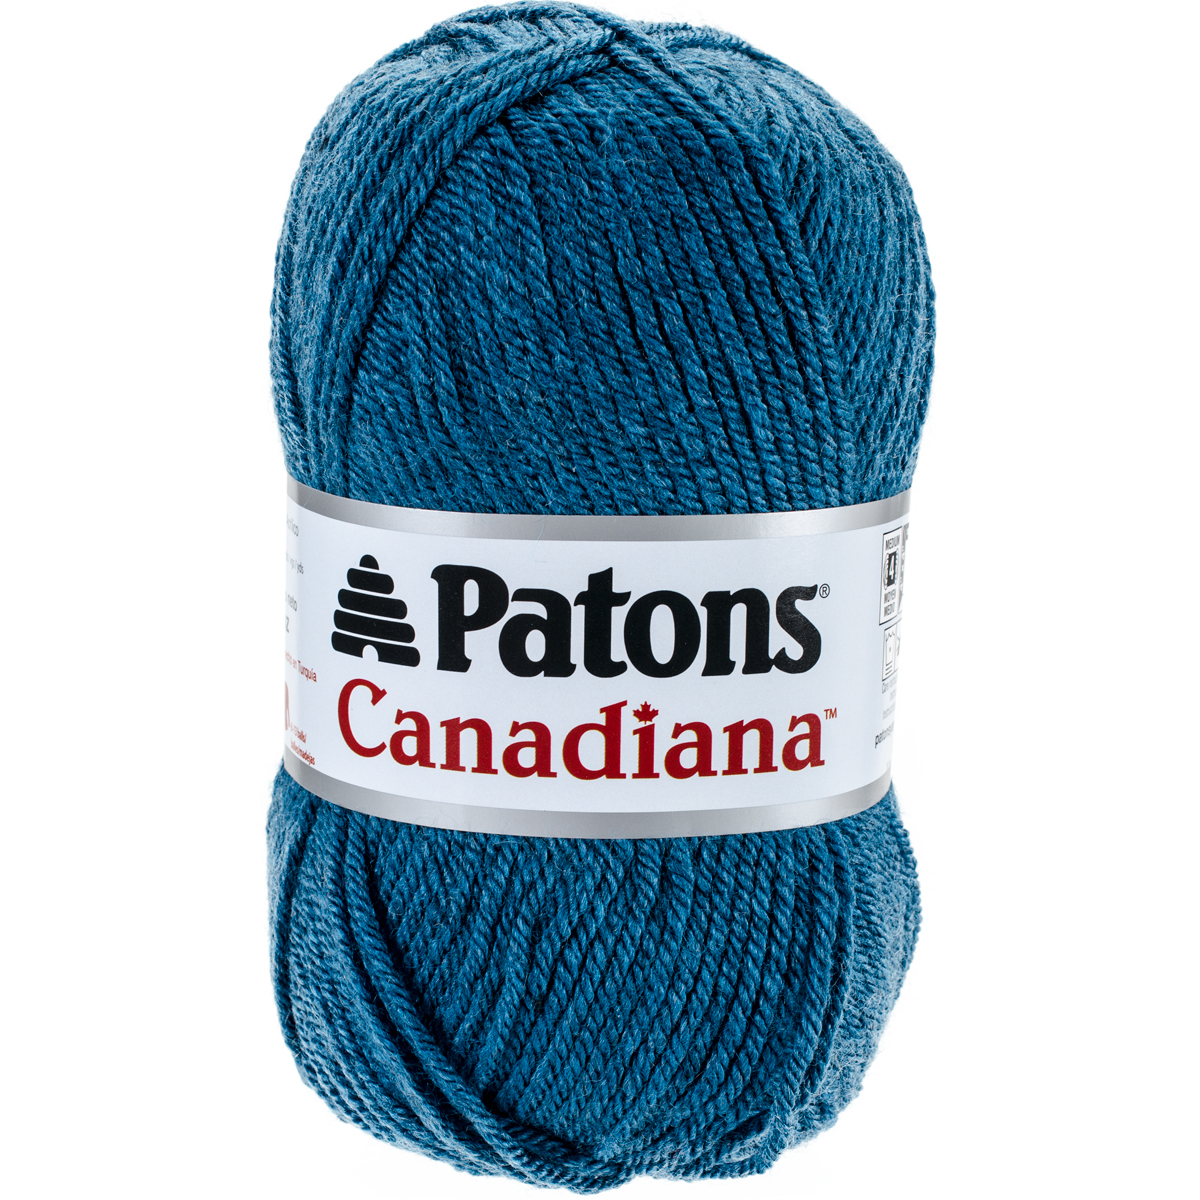 Patons Canadiana Yarn - Solids - 37 COLORS